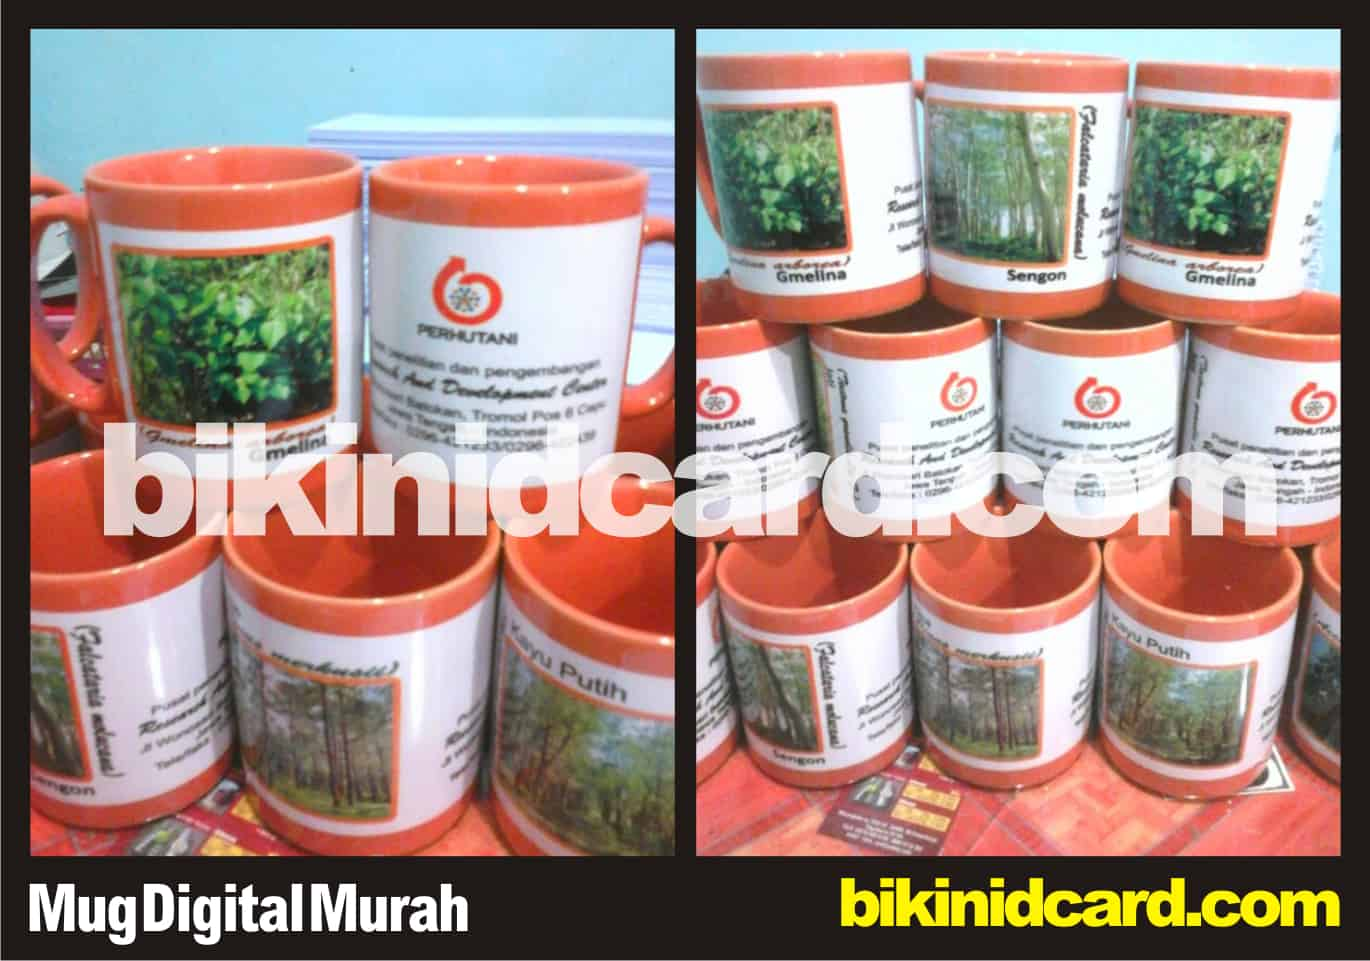 mug digital murah jogja full warna